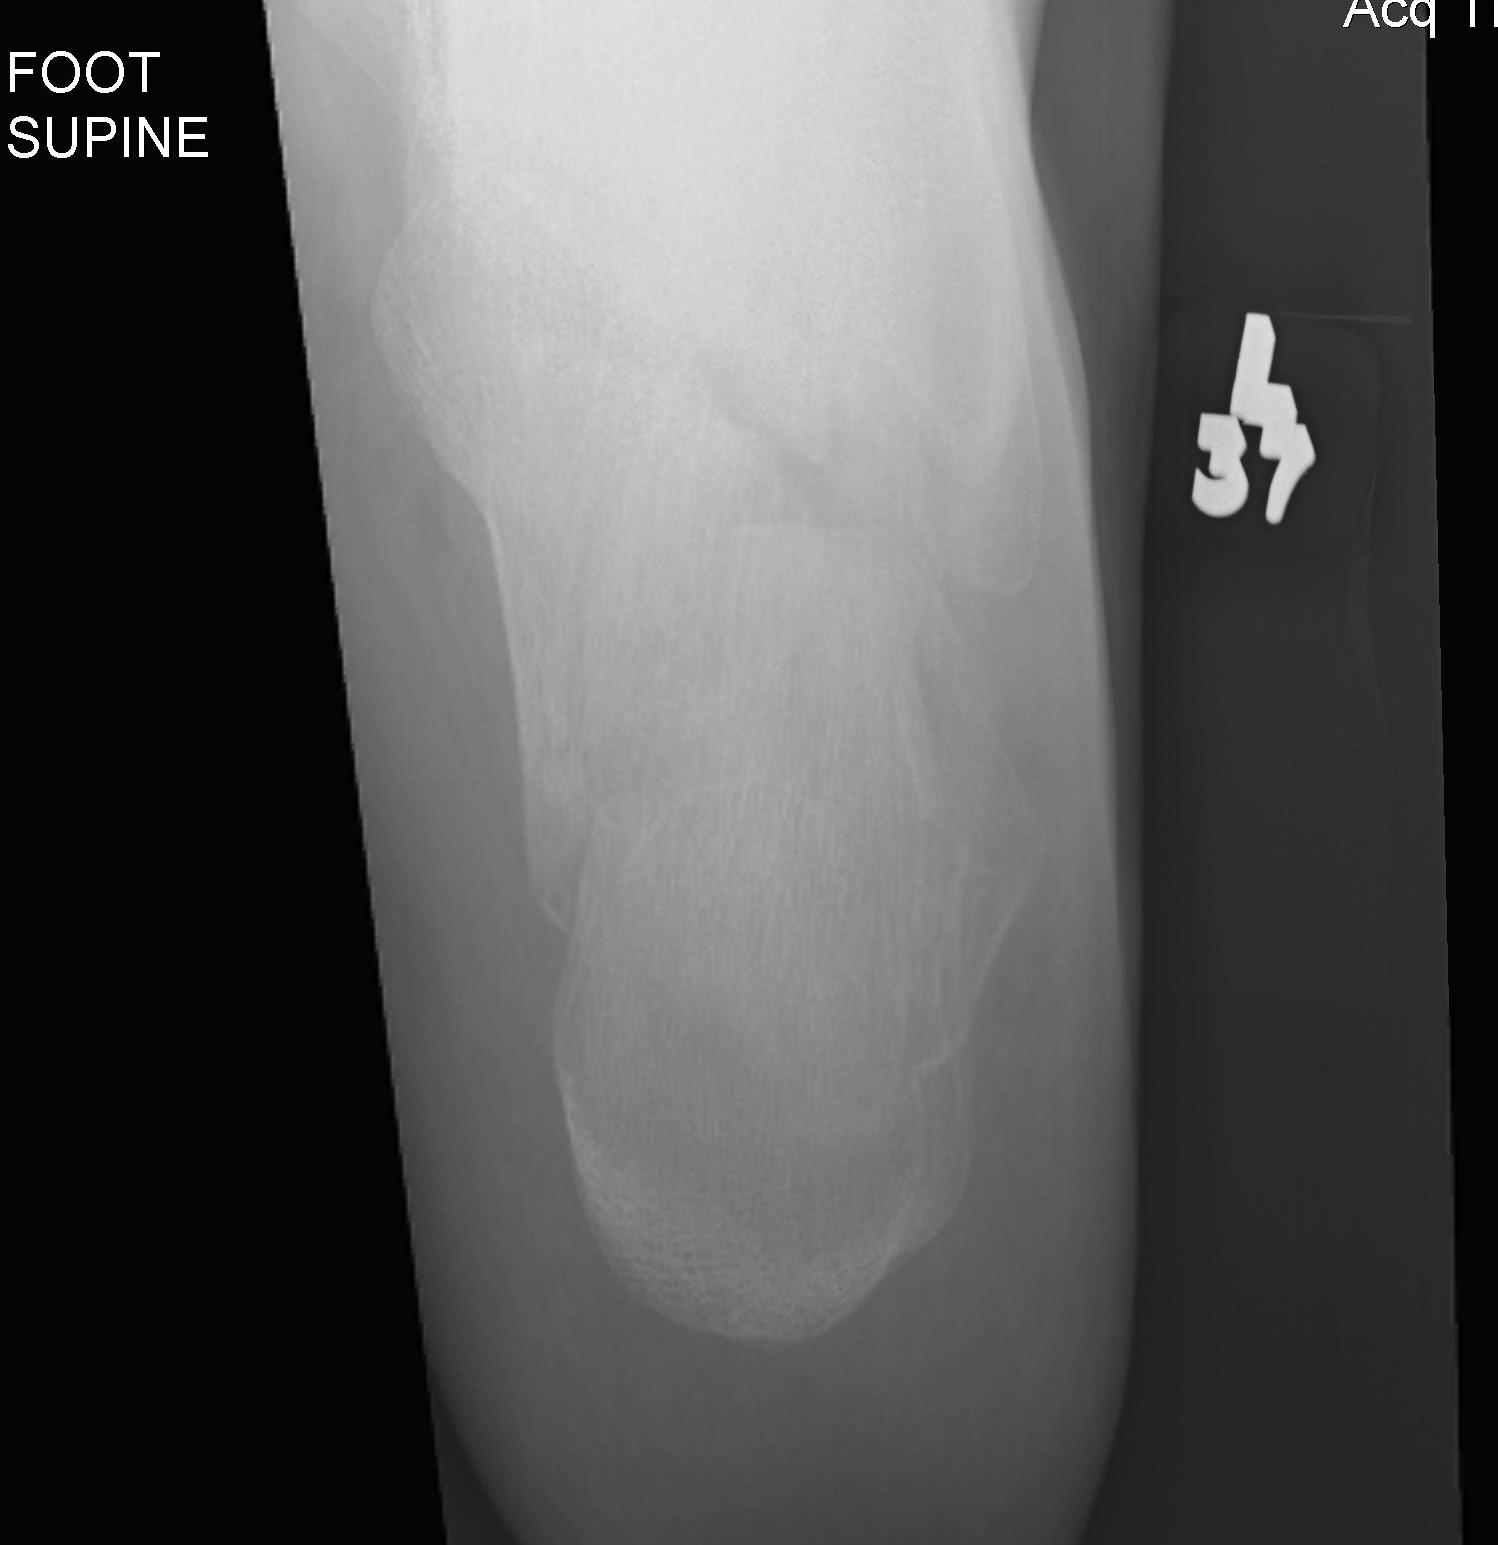 Calcaneal Fracture Harris Axial View